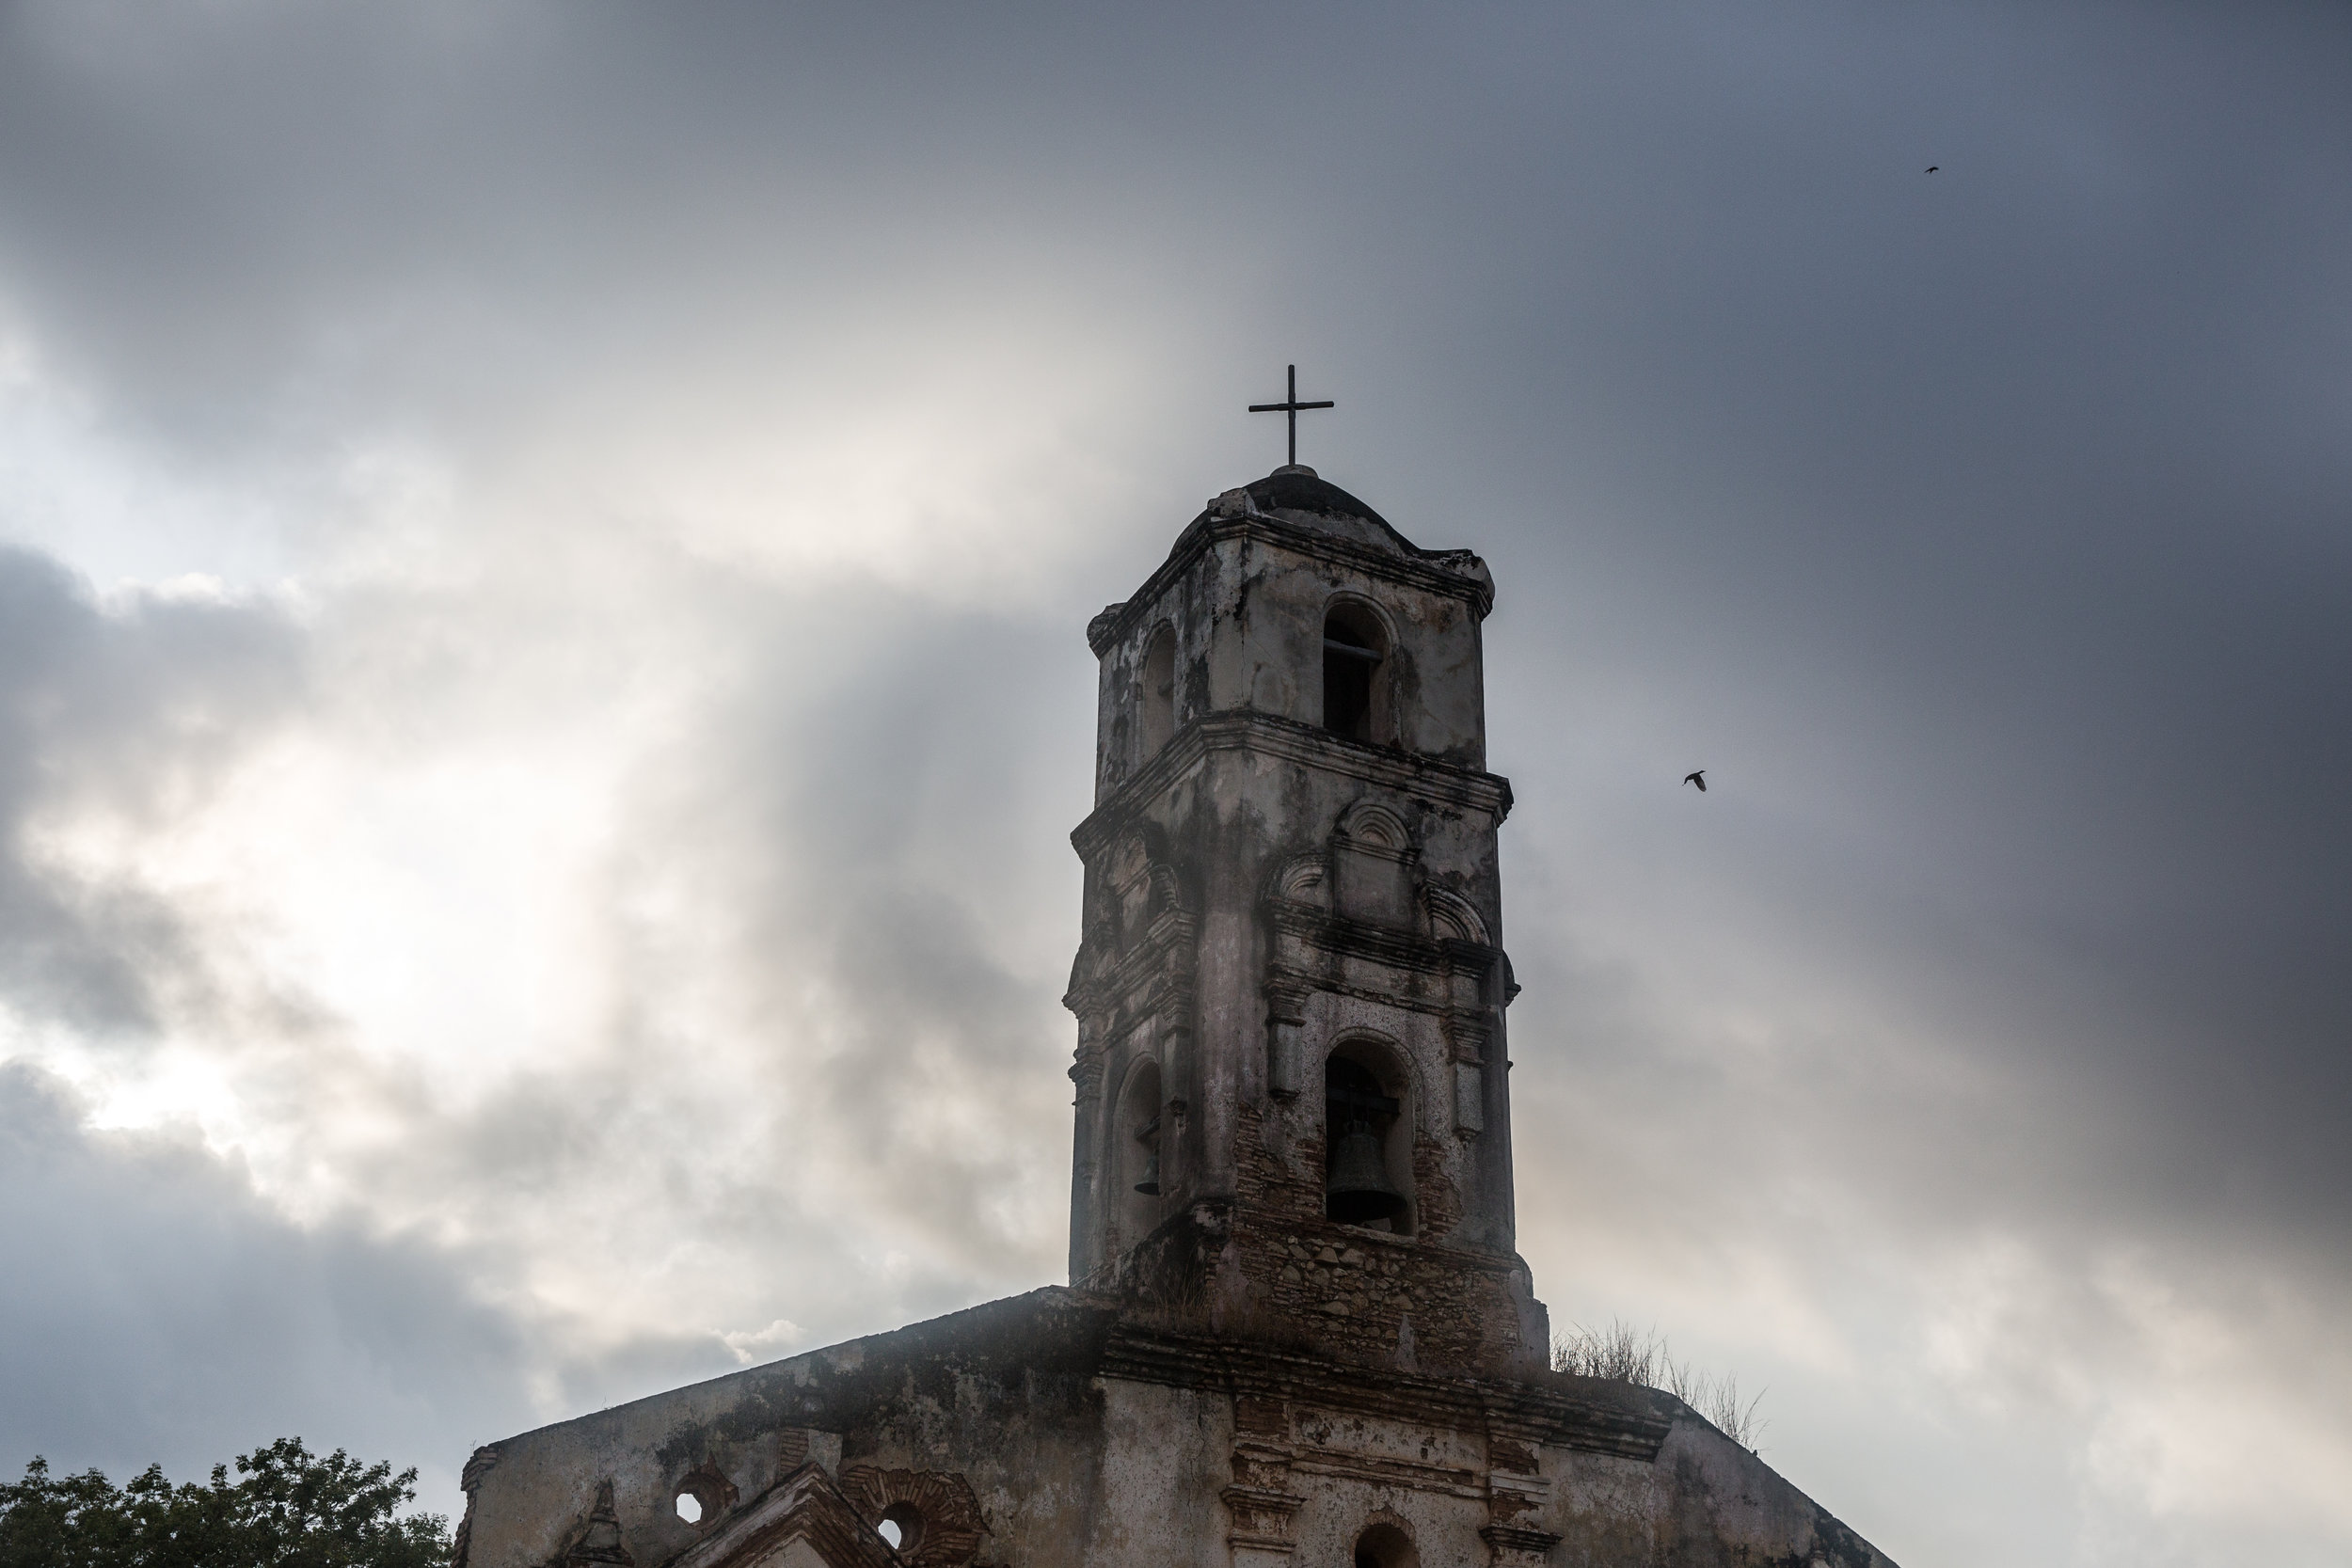 Rain rolling into the center of Trinidad over one of the many churches in the city on our last evening in Trinidad.